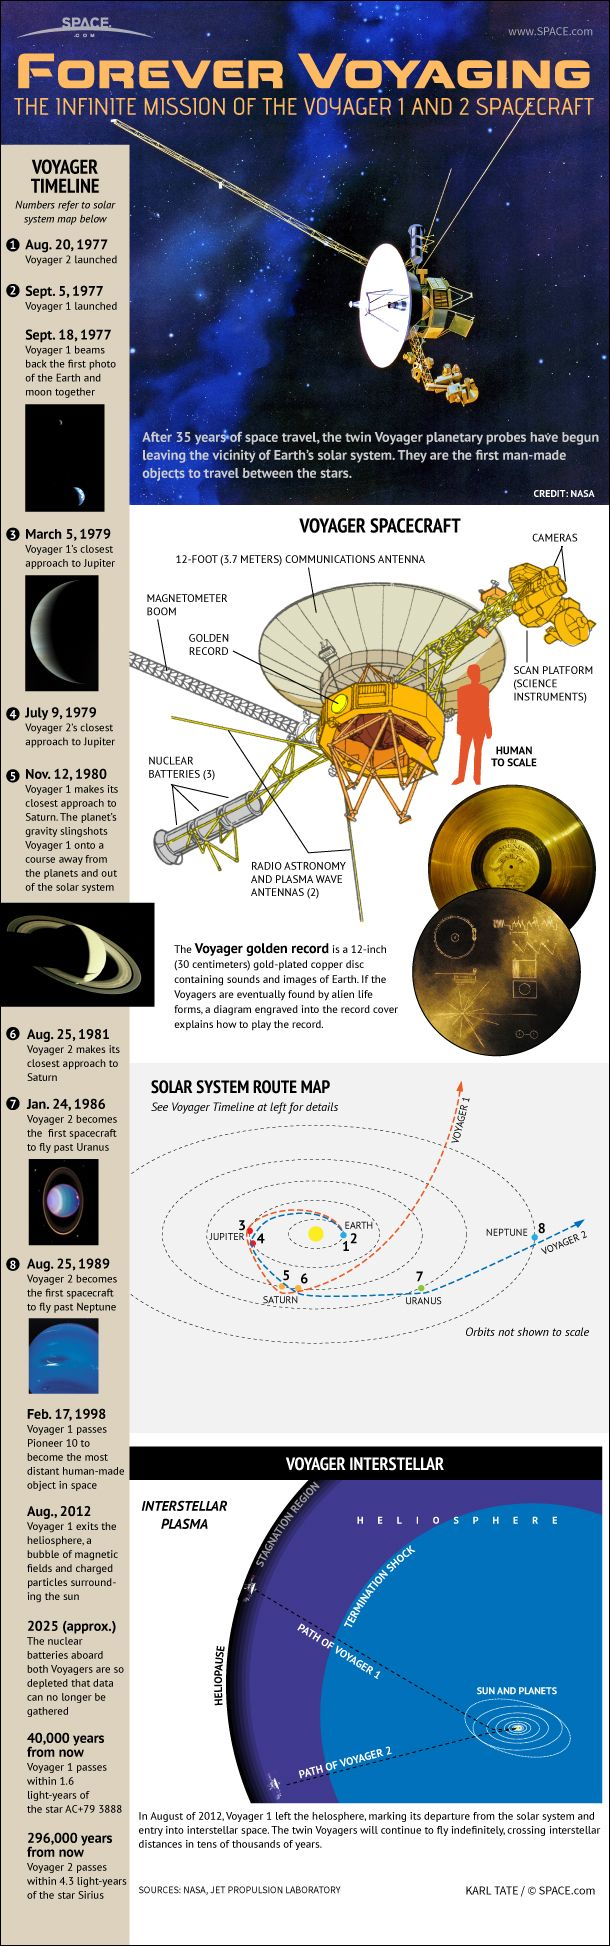 Voyager 1 Has Left Solar System, Enters Interstellar Space | Space.com